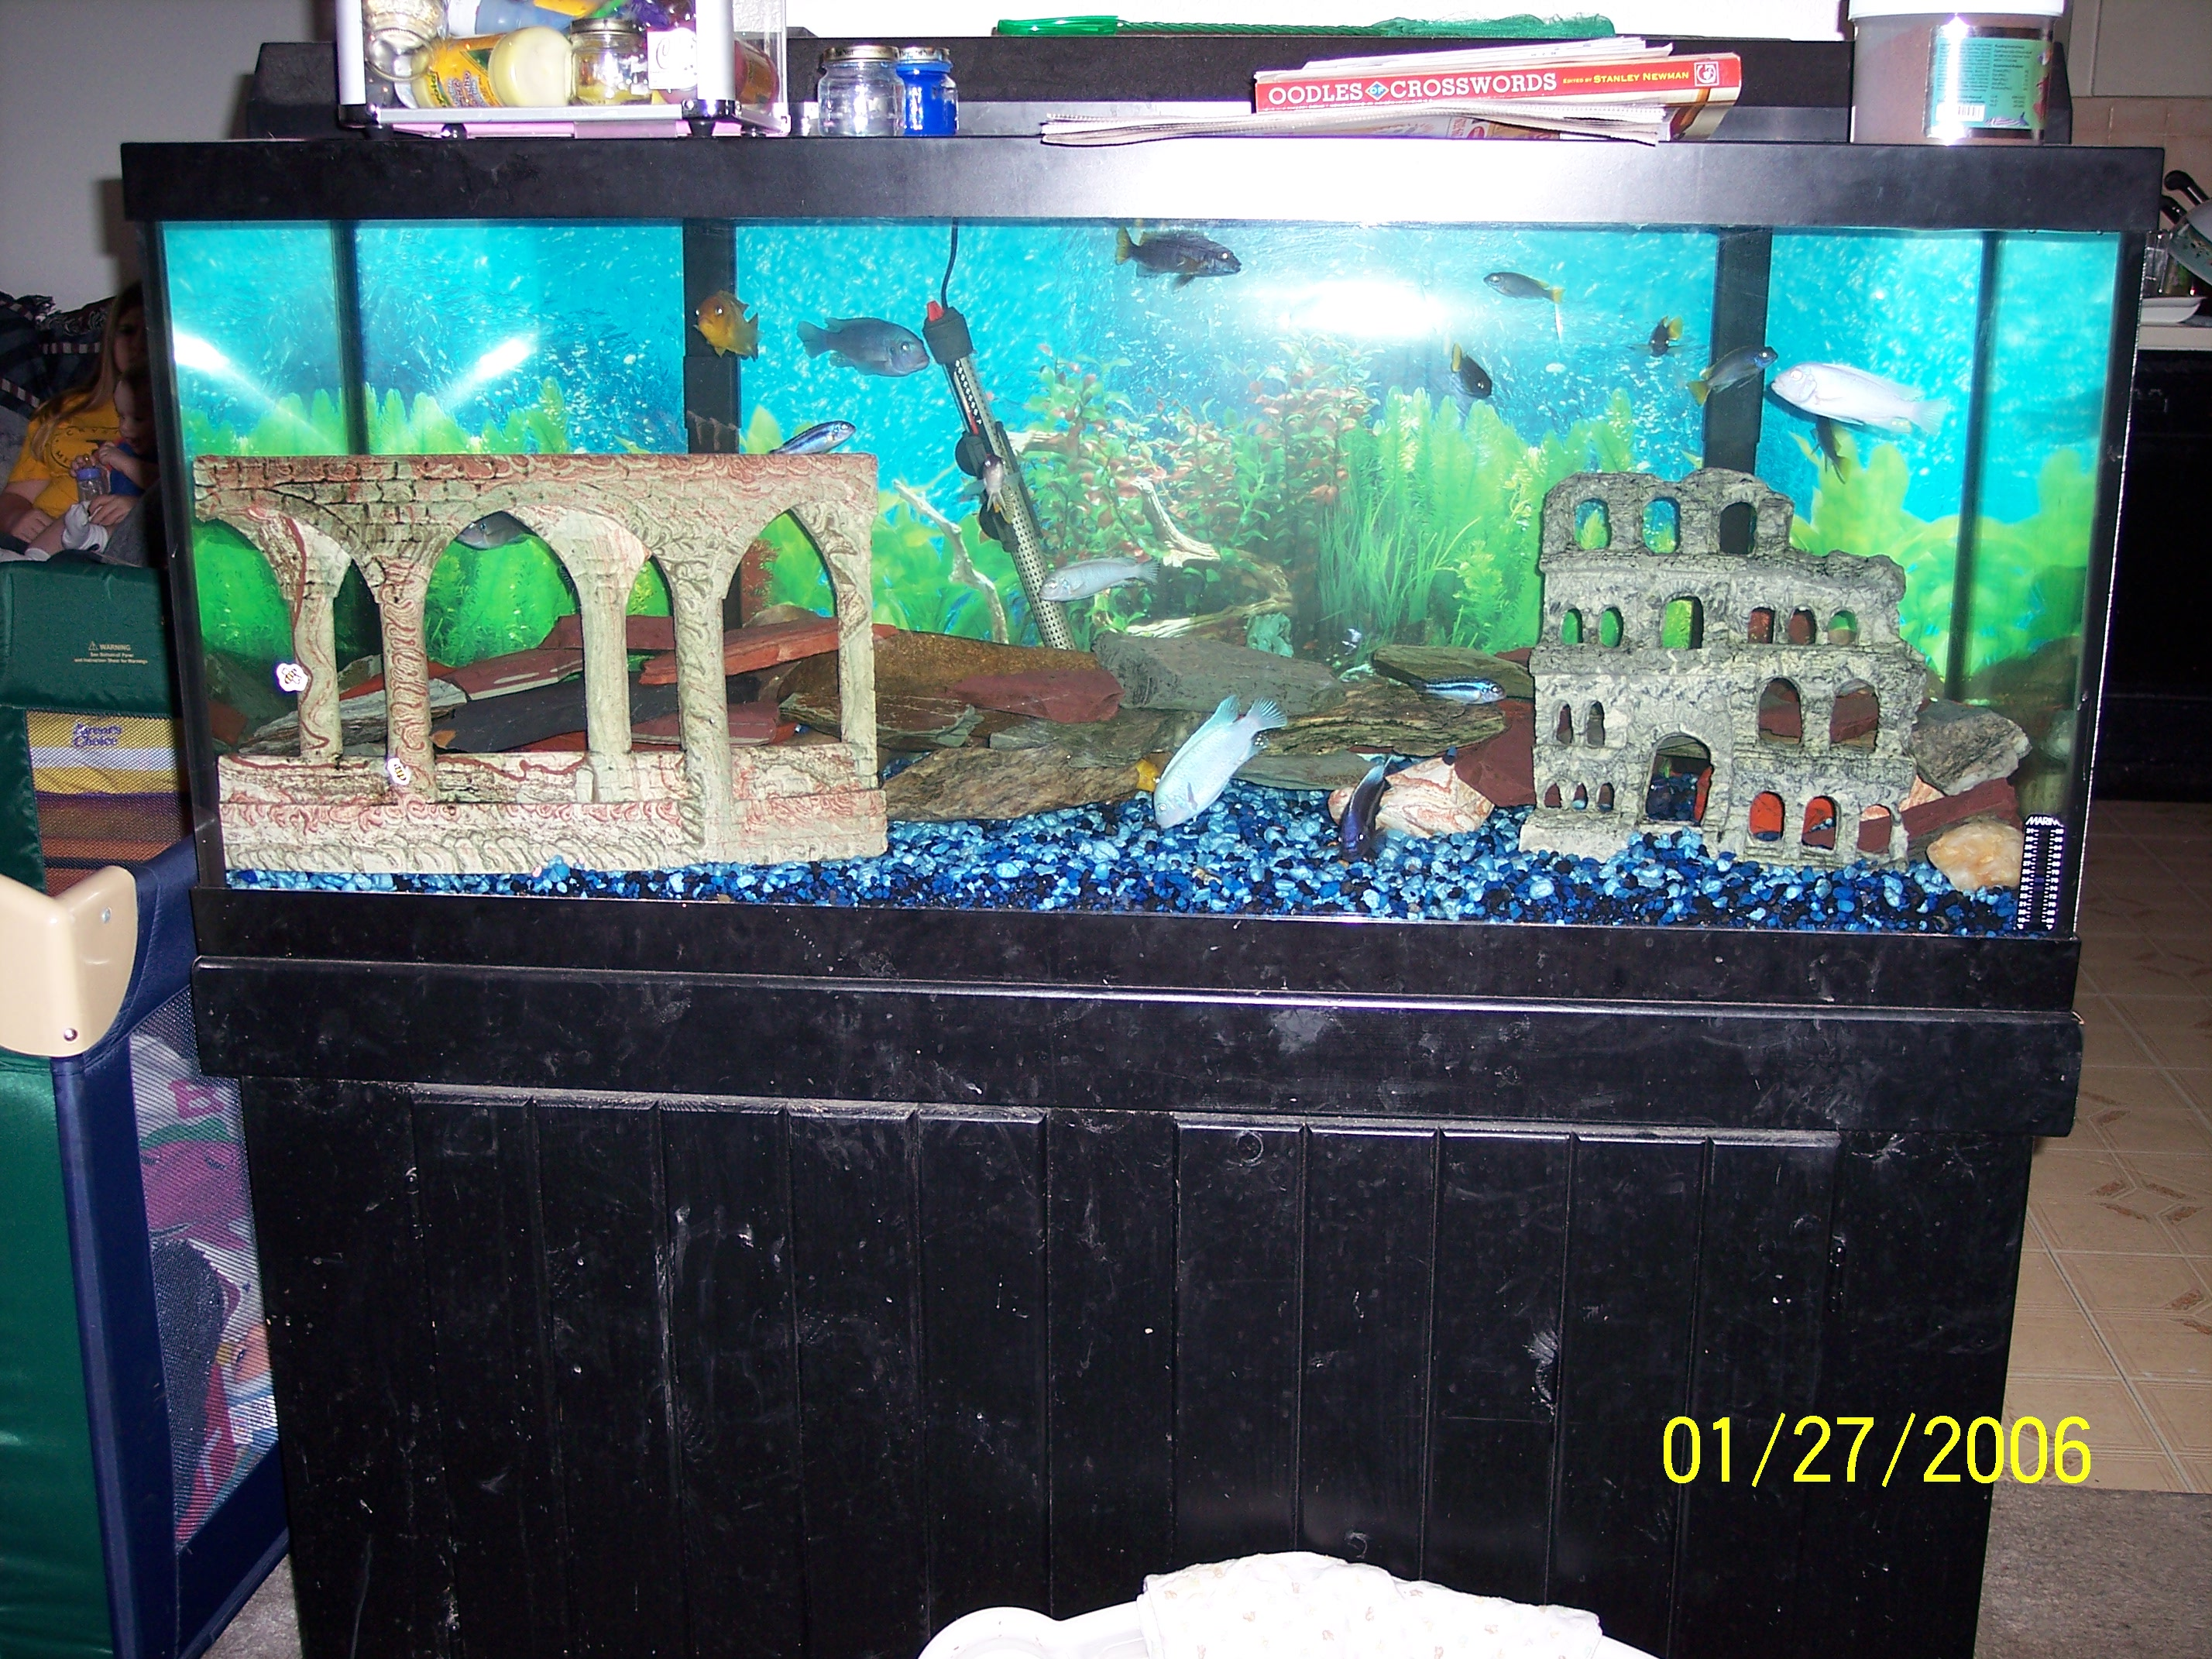 Fish tank decorations 75 gallon dimensions 2017 fish for Used fish tanks for sale many sizes